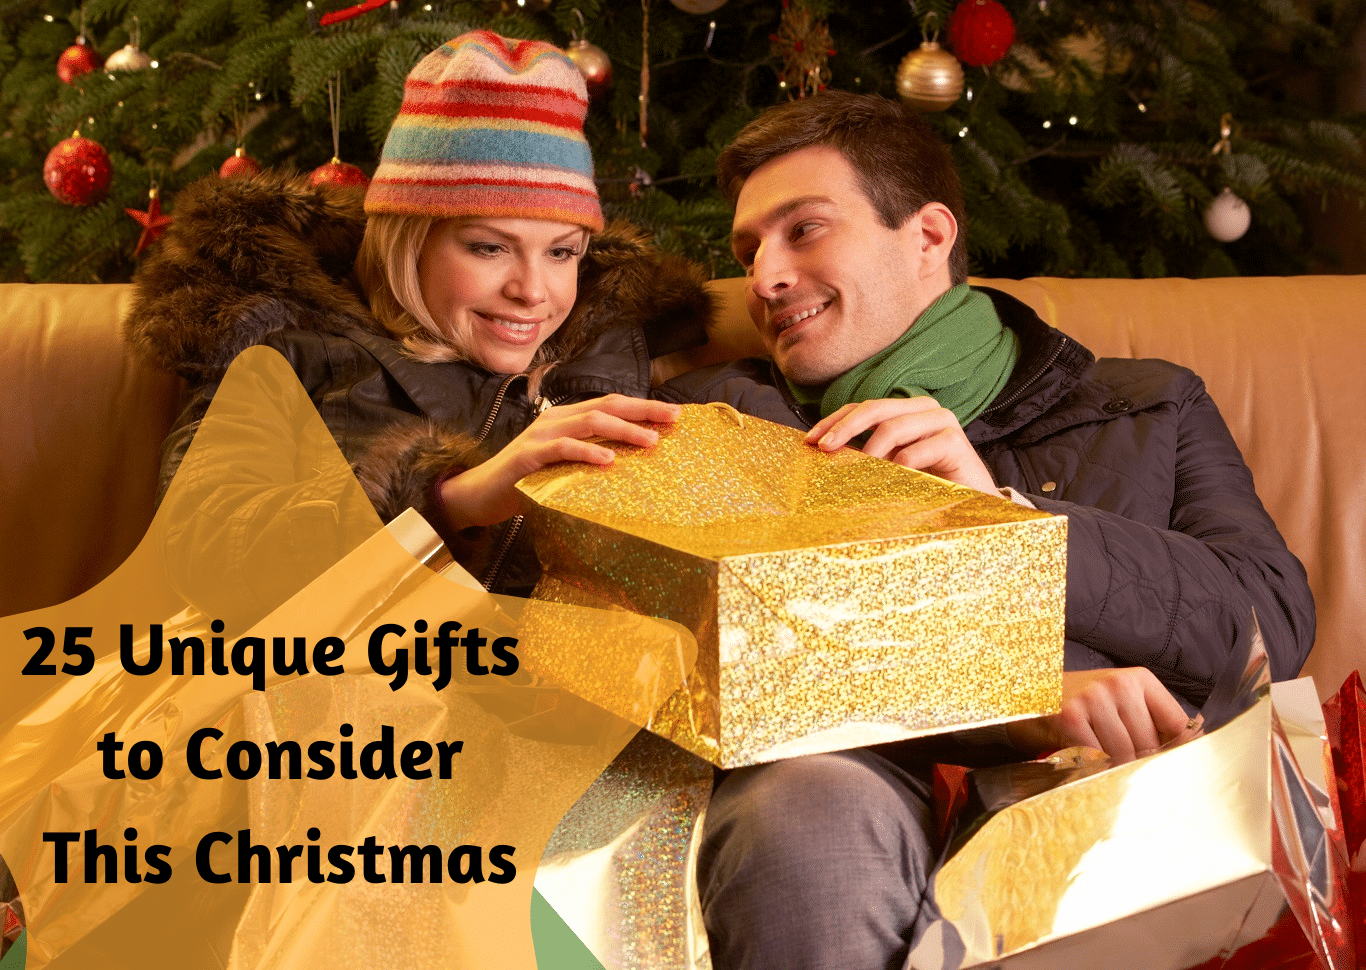 25 Unique Gifts to Consider This Christmas